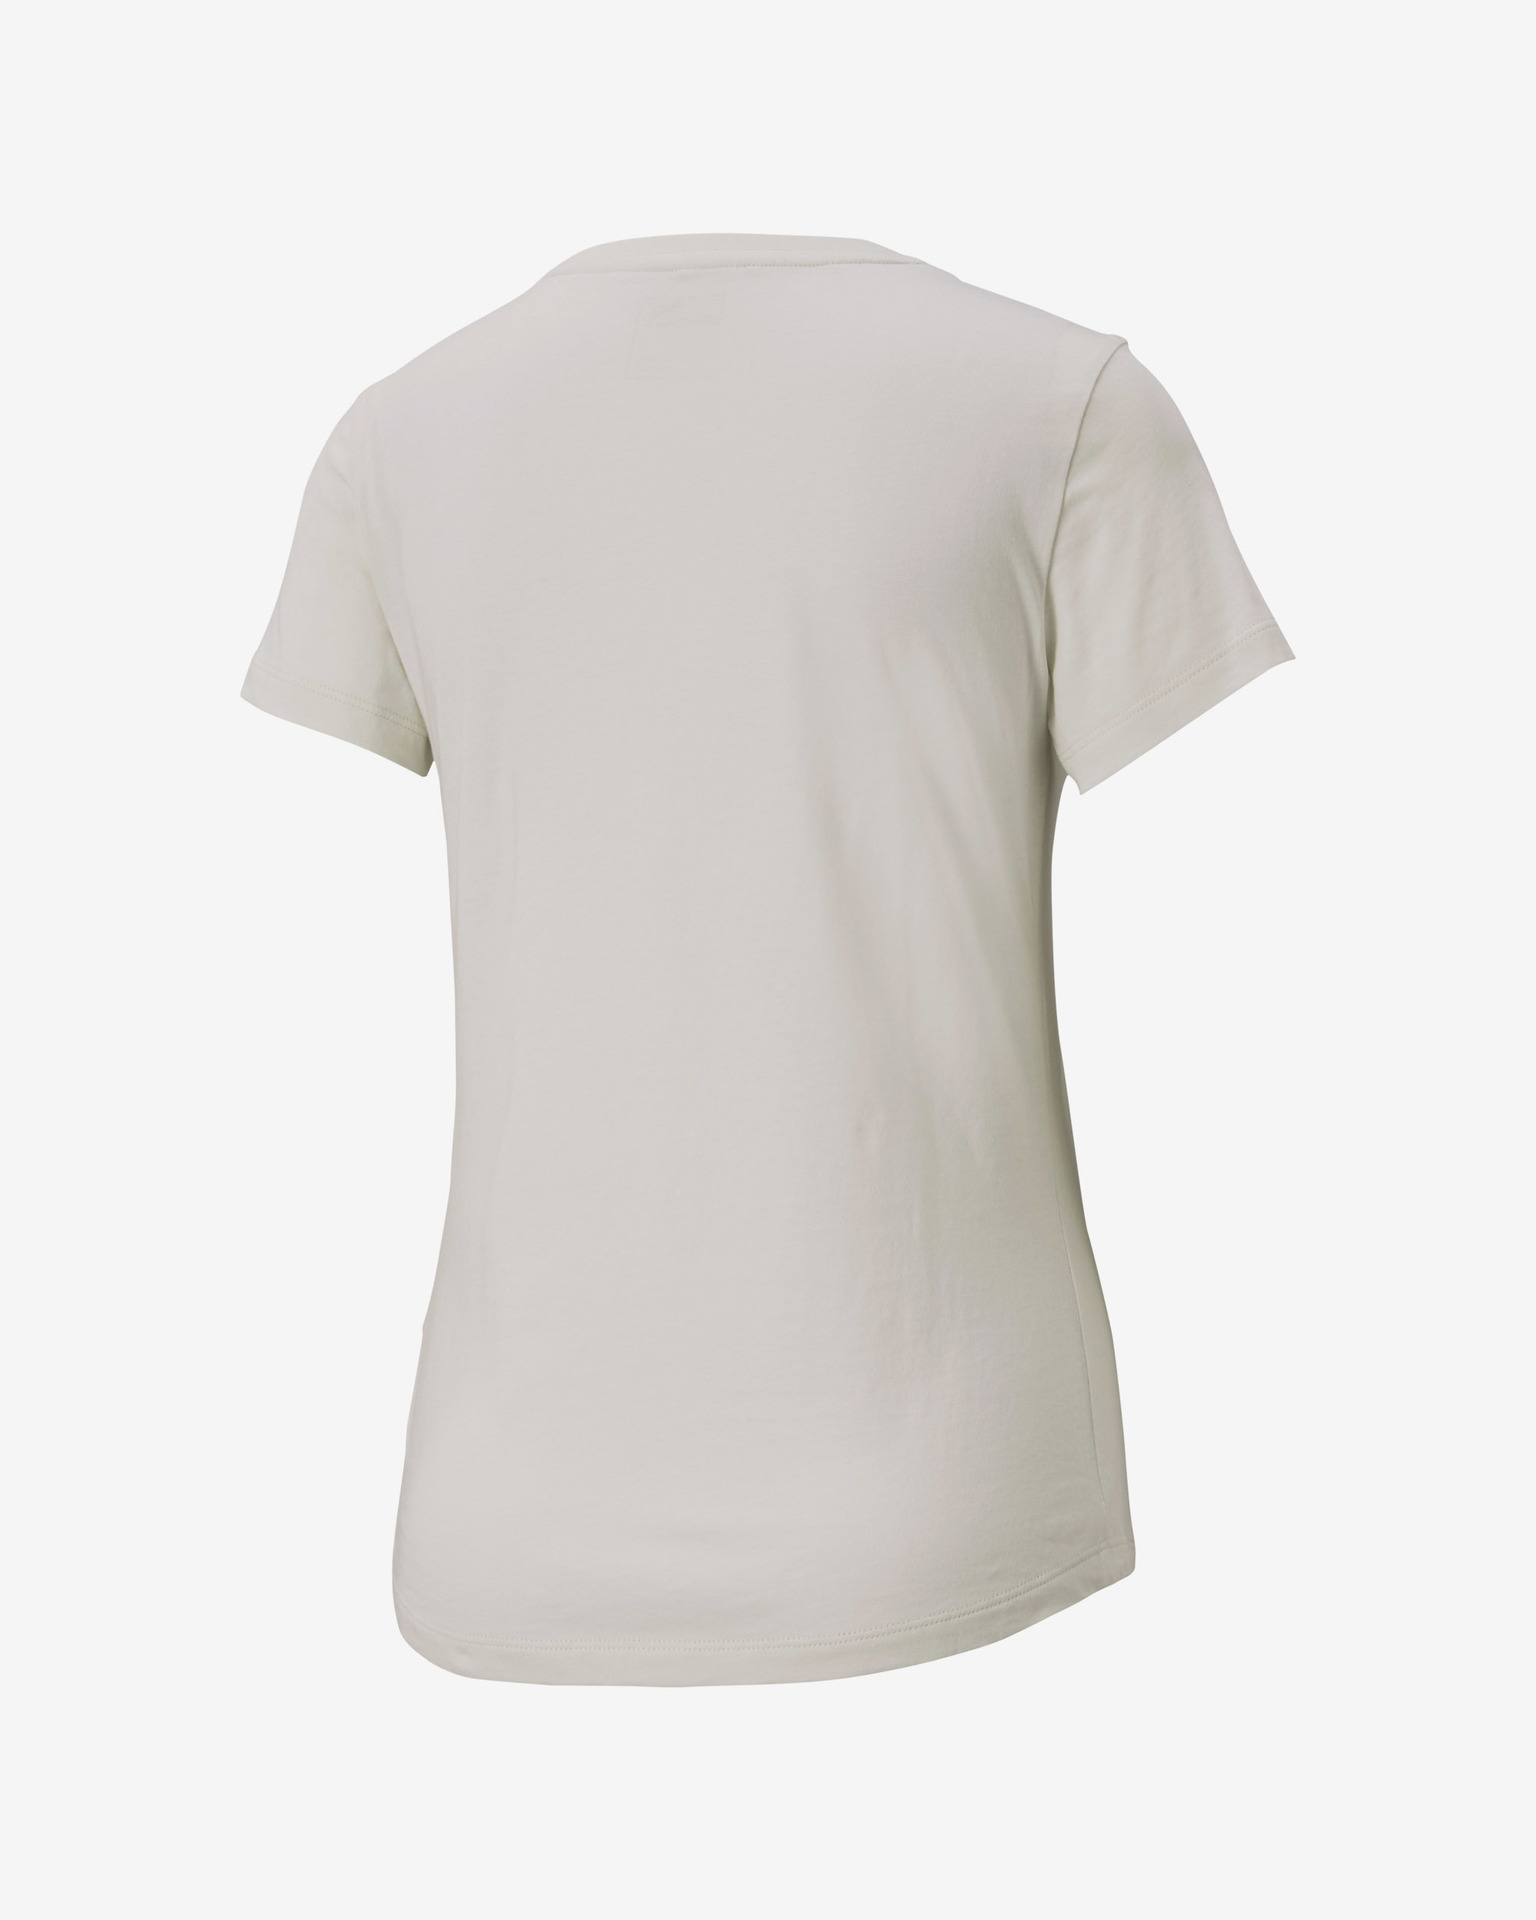 Puma Amplified Graphic T-shirt White